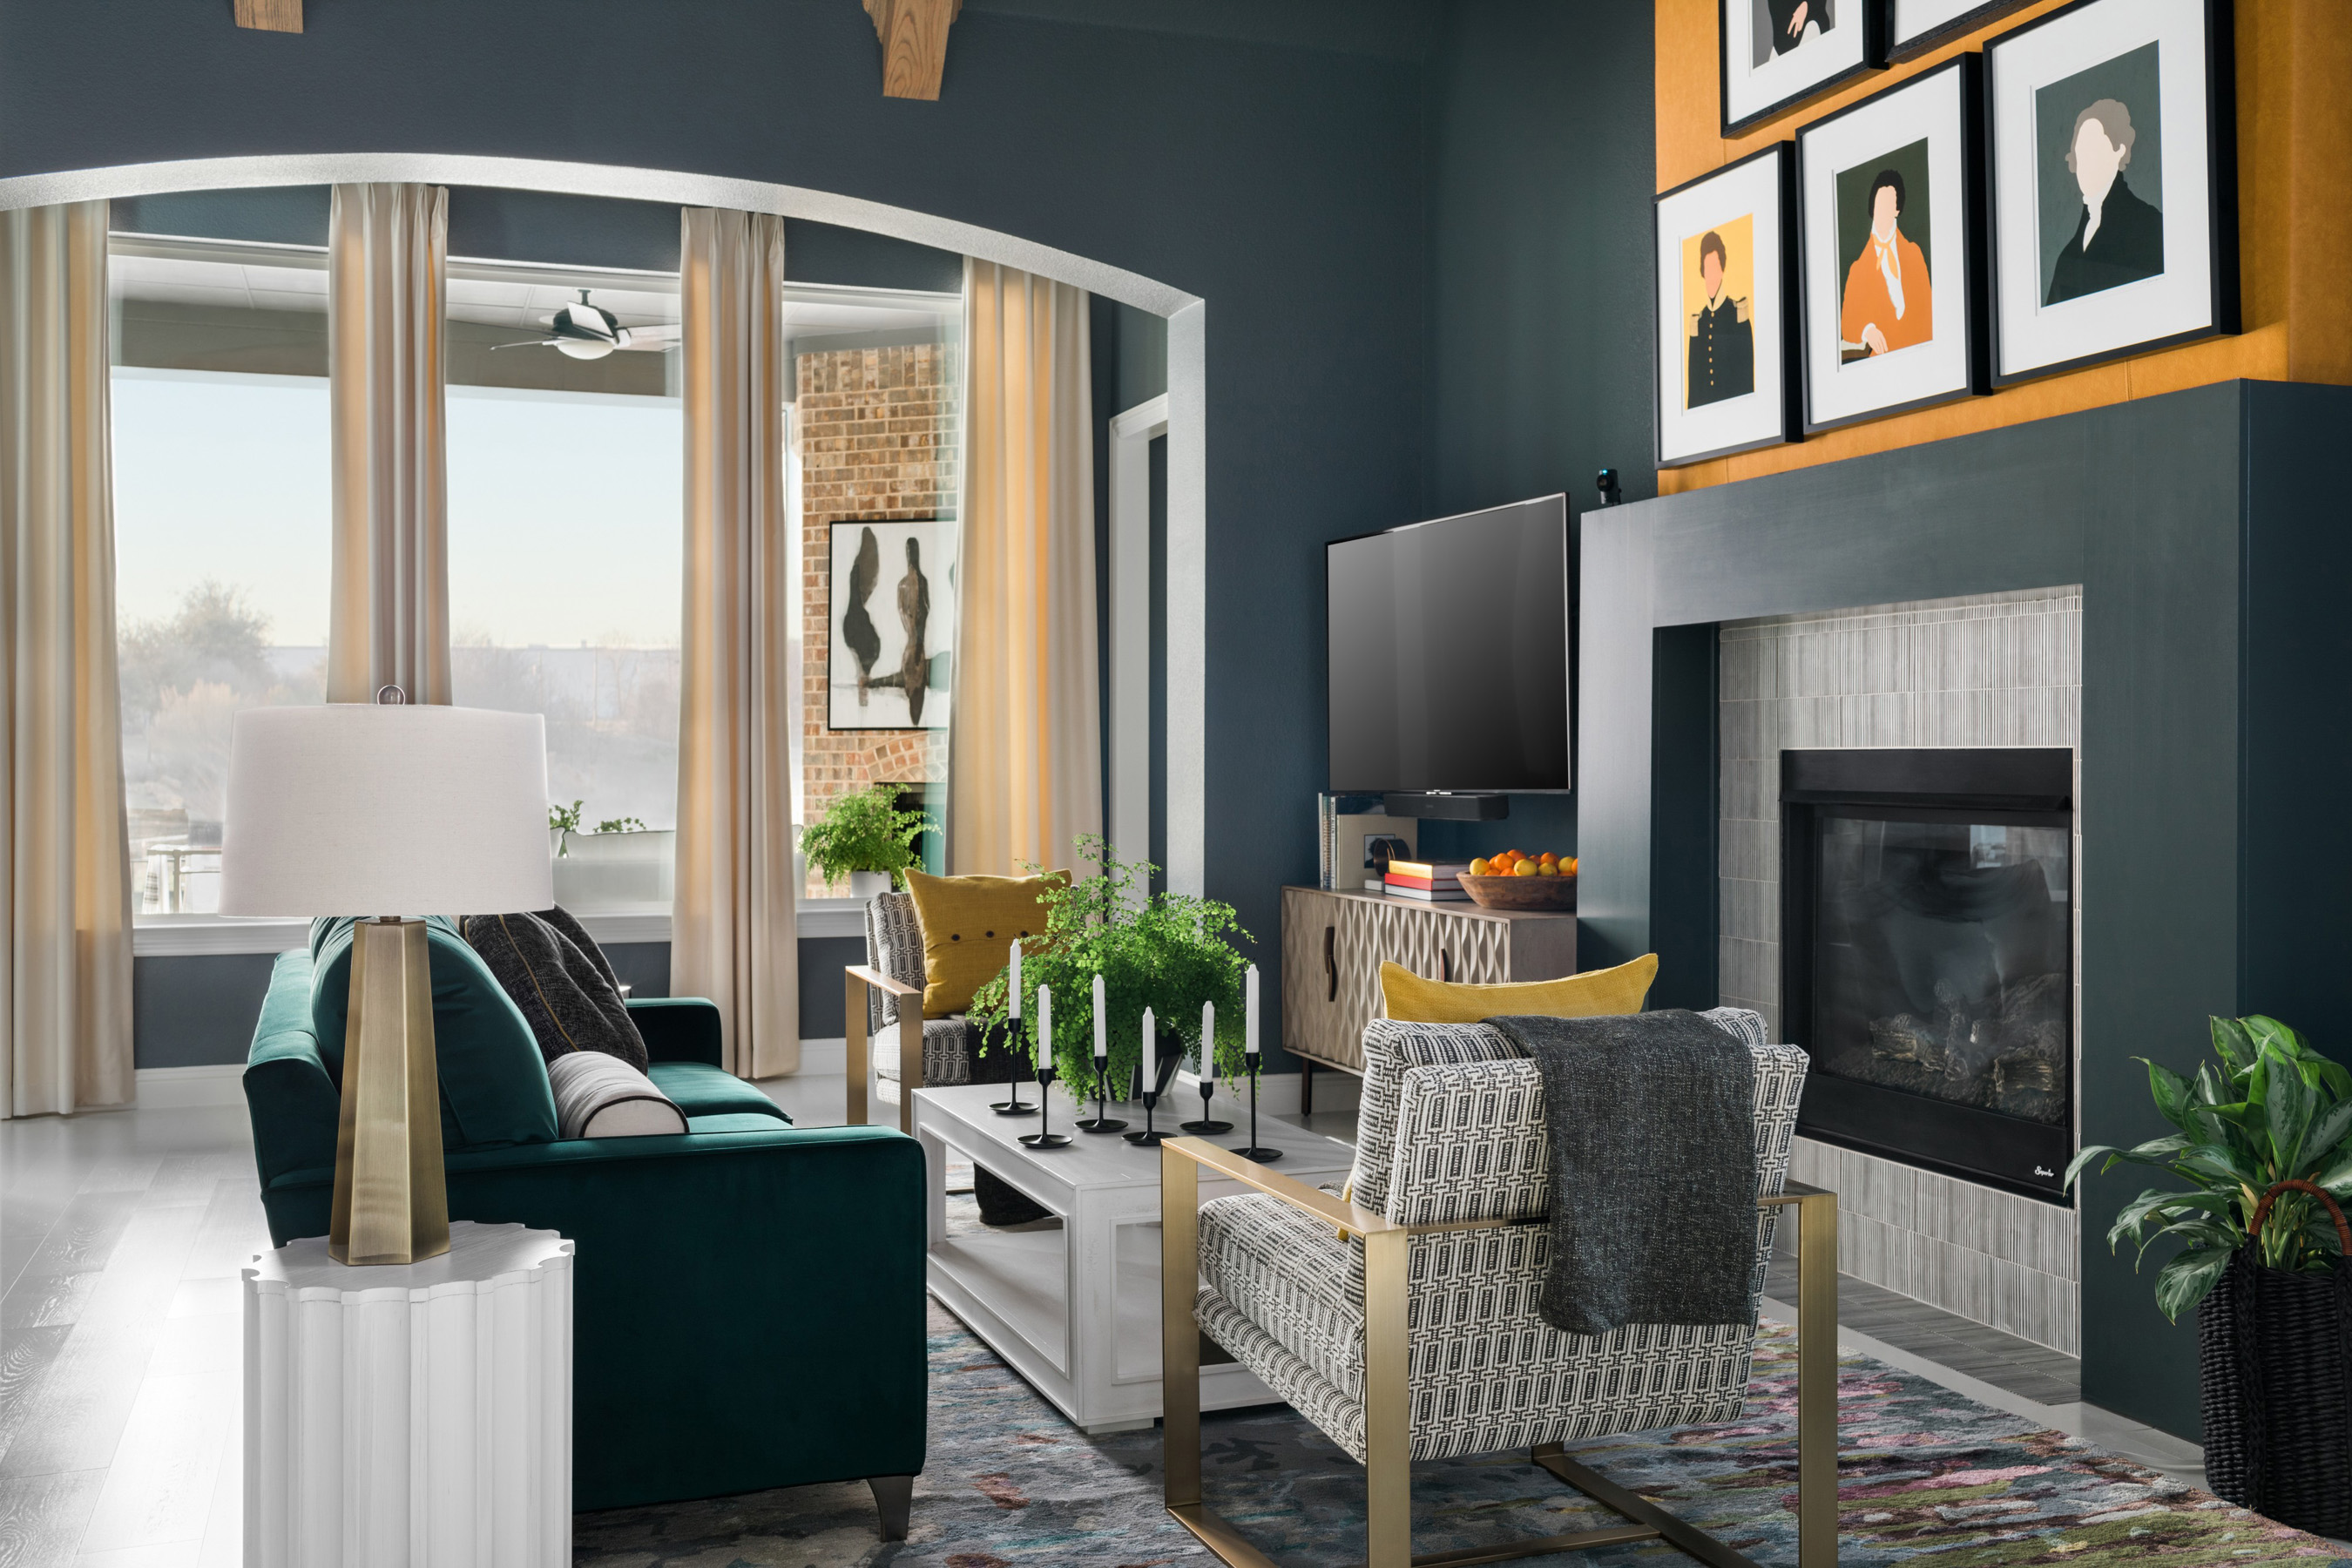 hgtv livingrooms take a virtual tour of hgtv smart home 2019 located in the dallas fort worth suburb of roanoke 3248